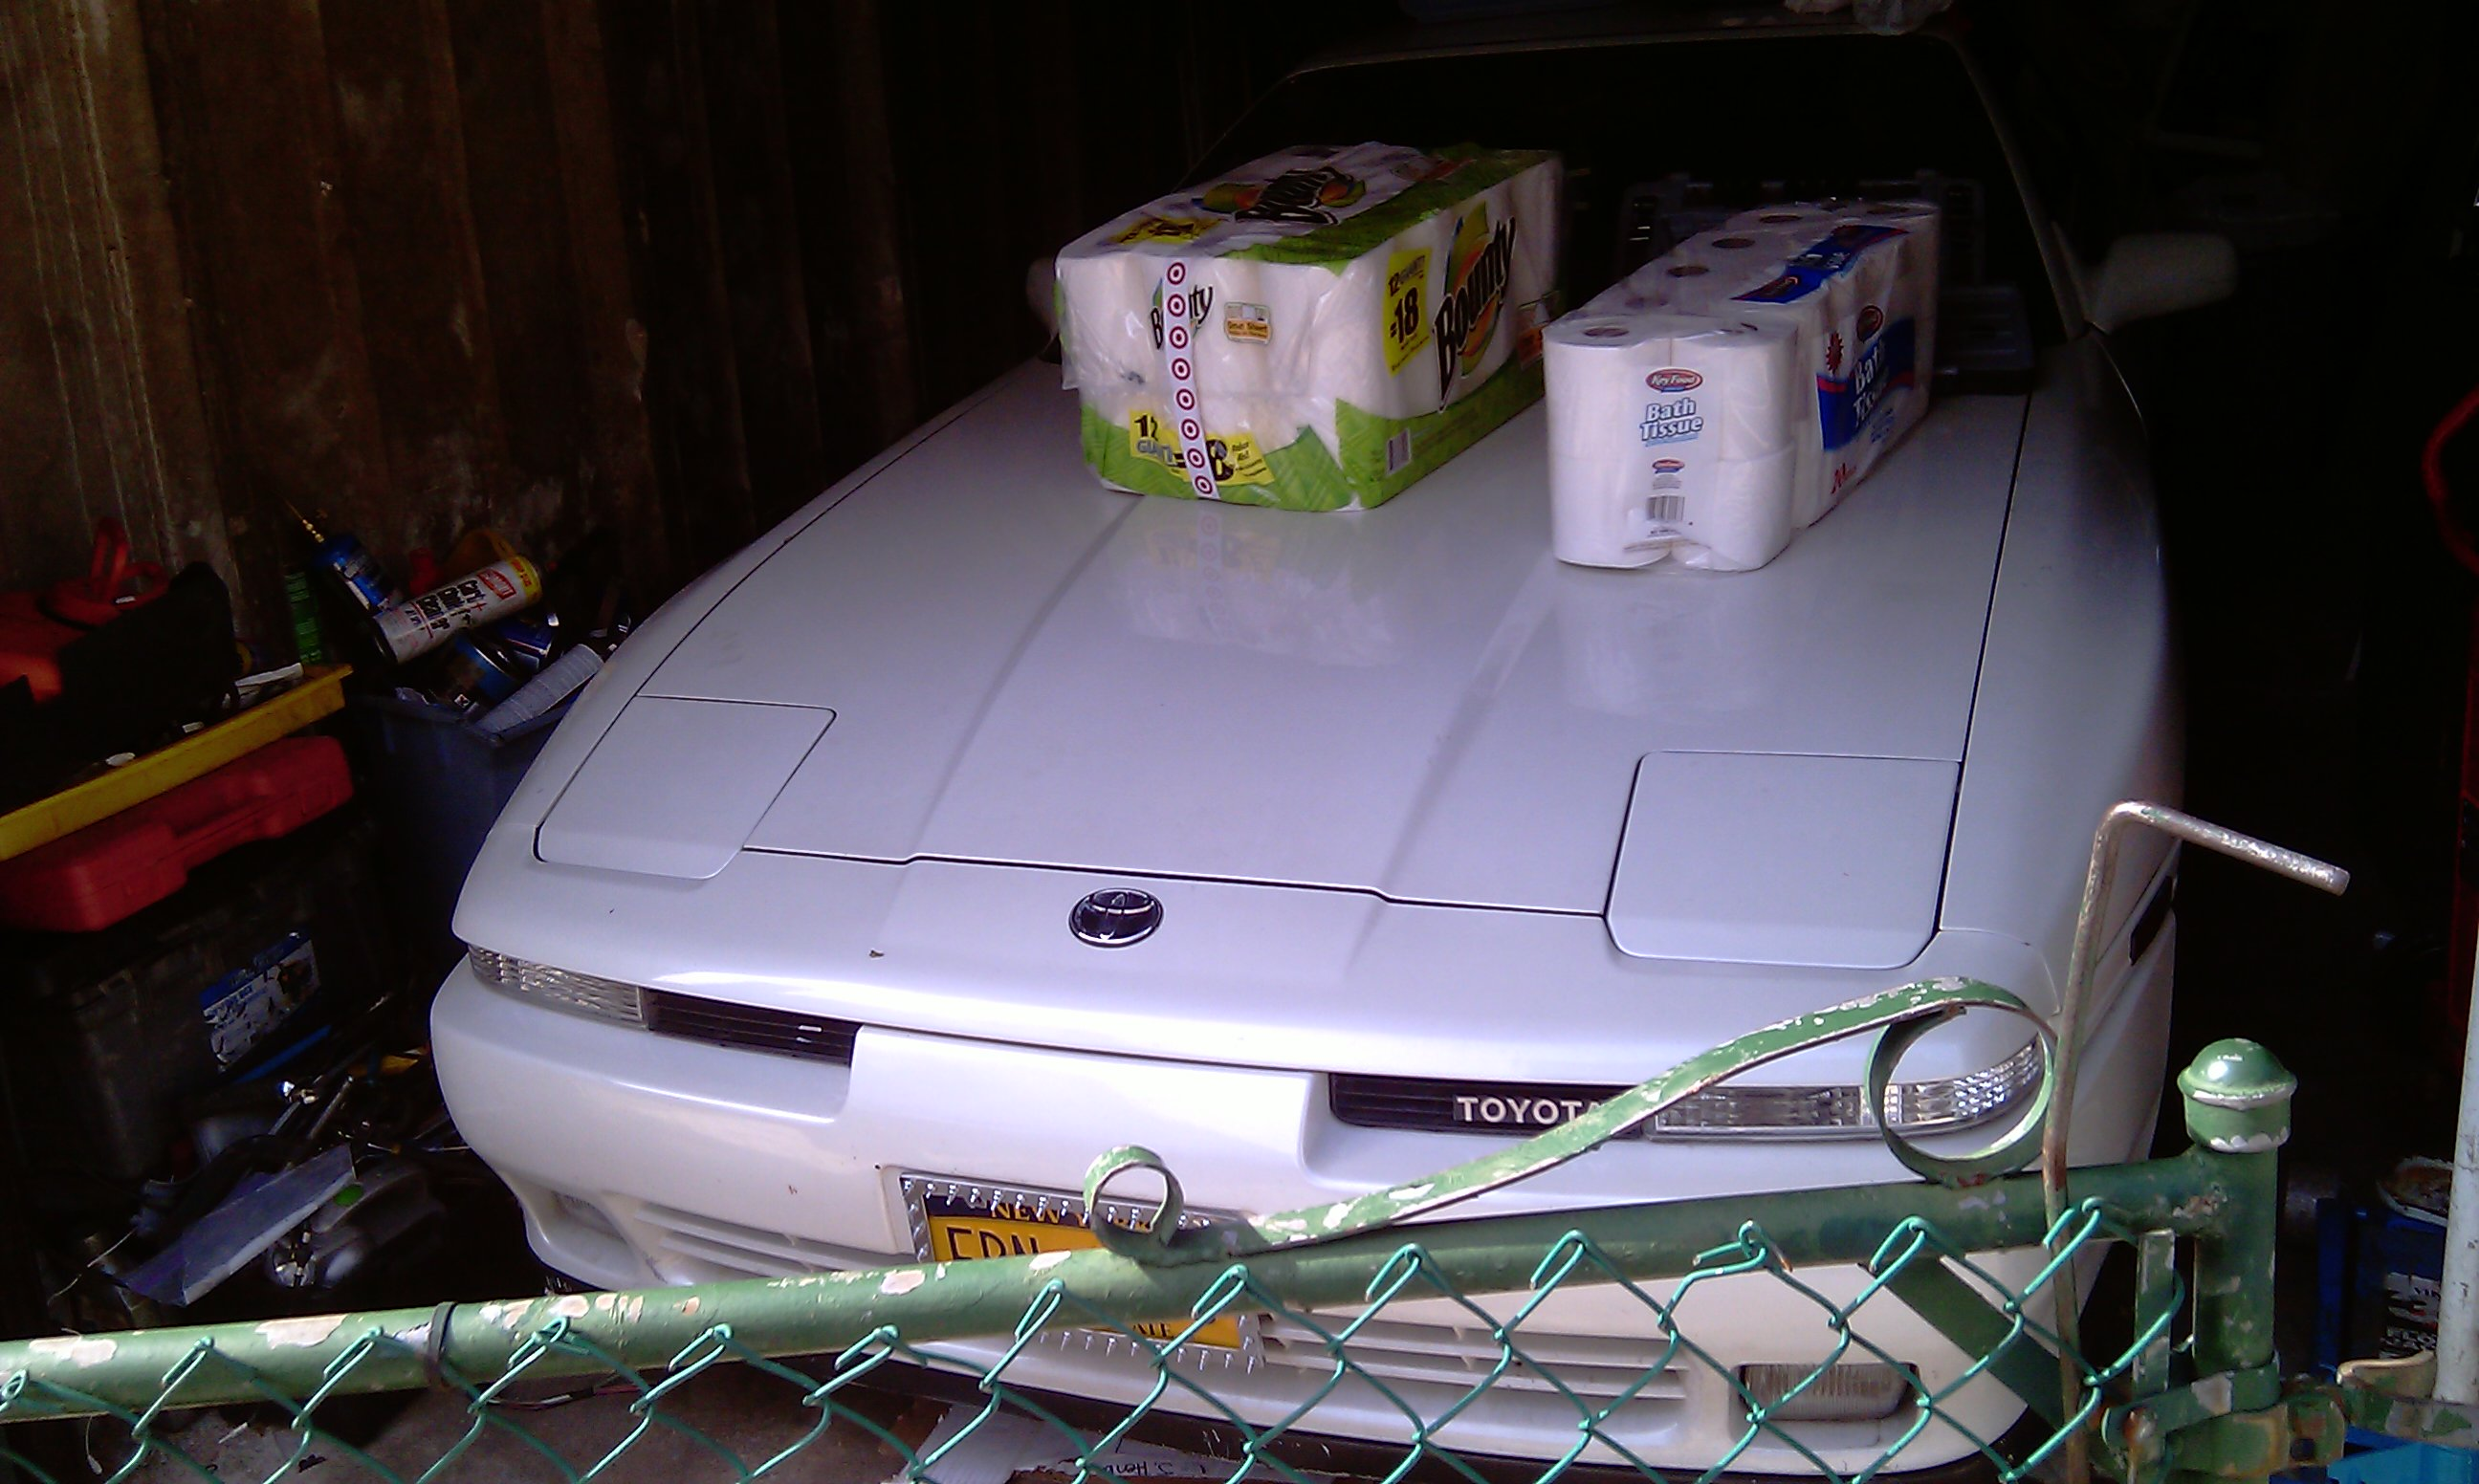 Swap from 1.5jz supra to is300 body-imag0233.jpg